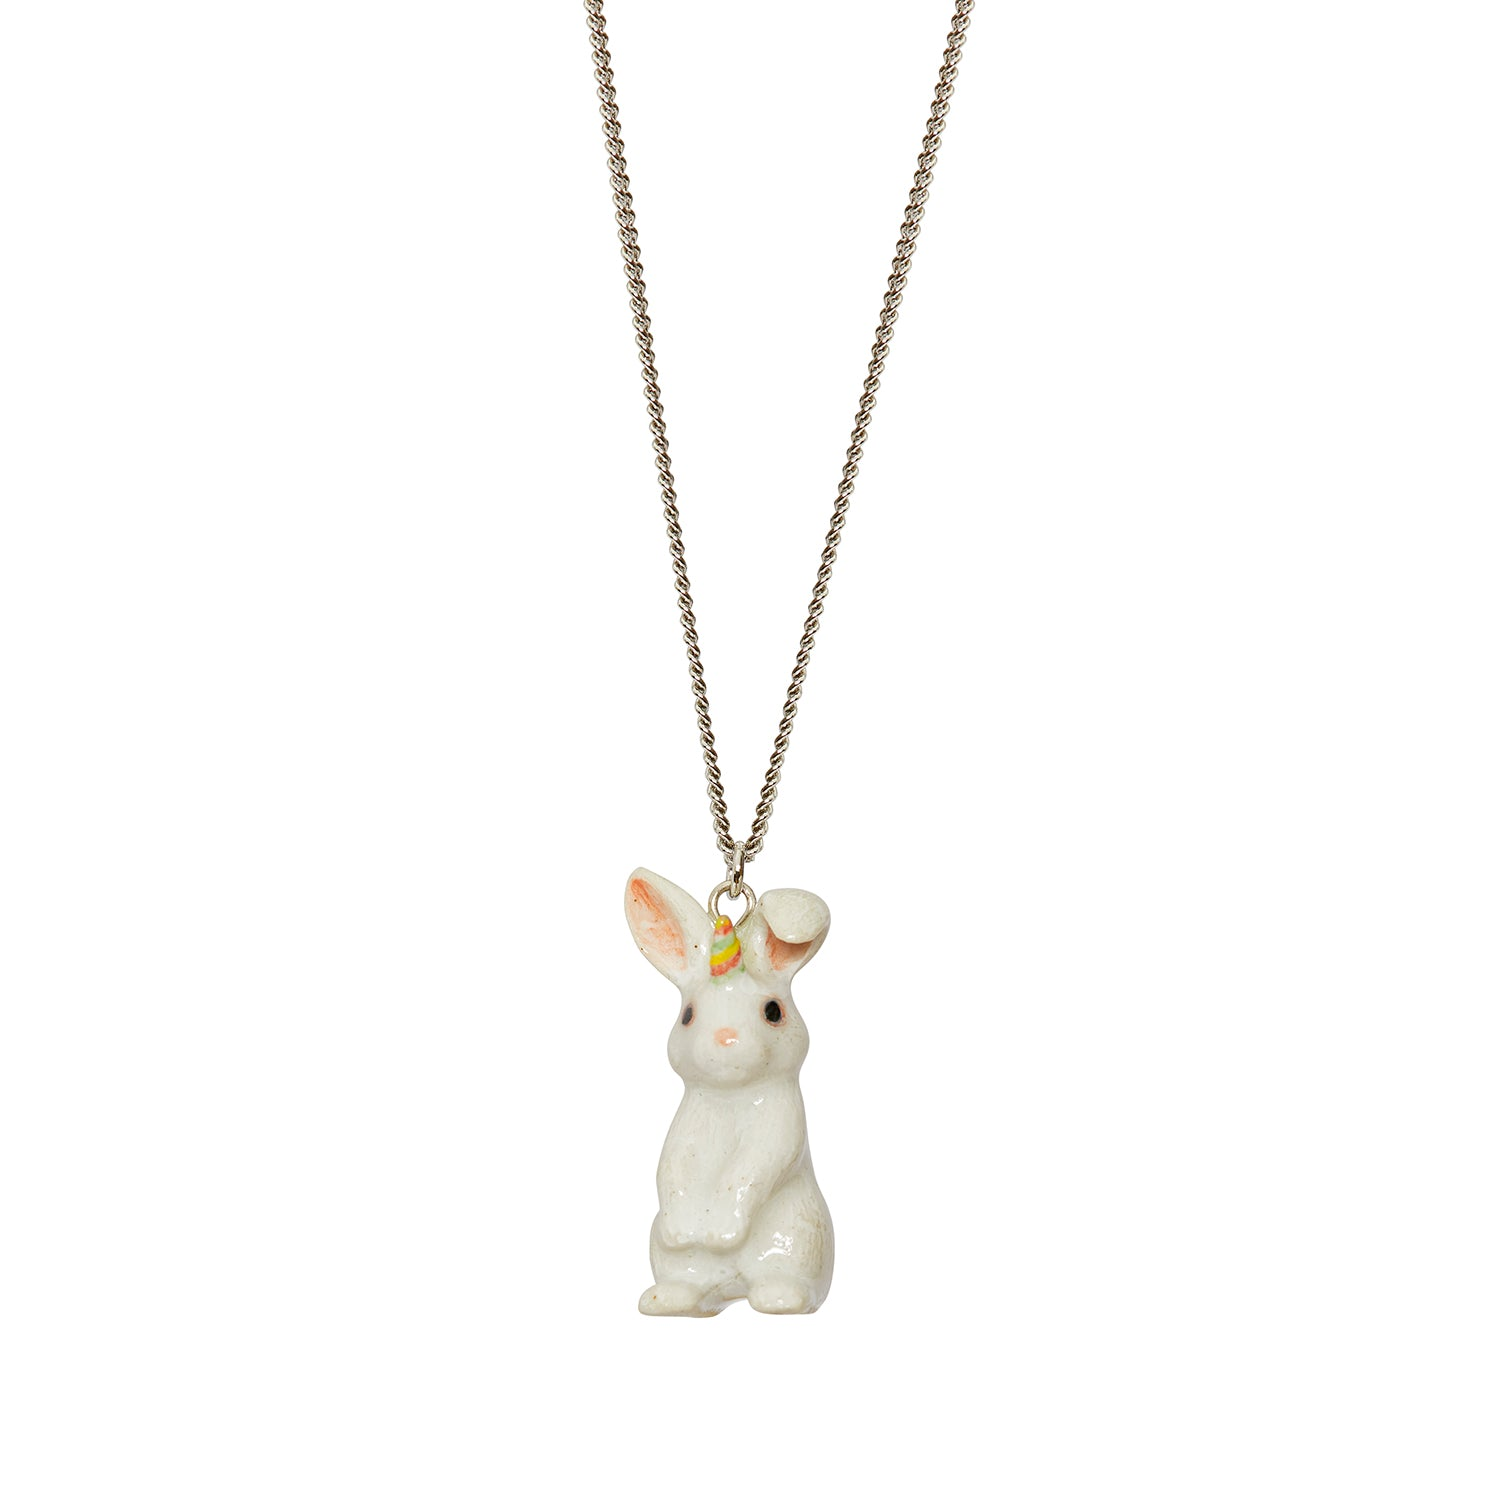 Pastel Unicorn Bunny Necklace